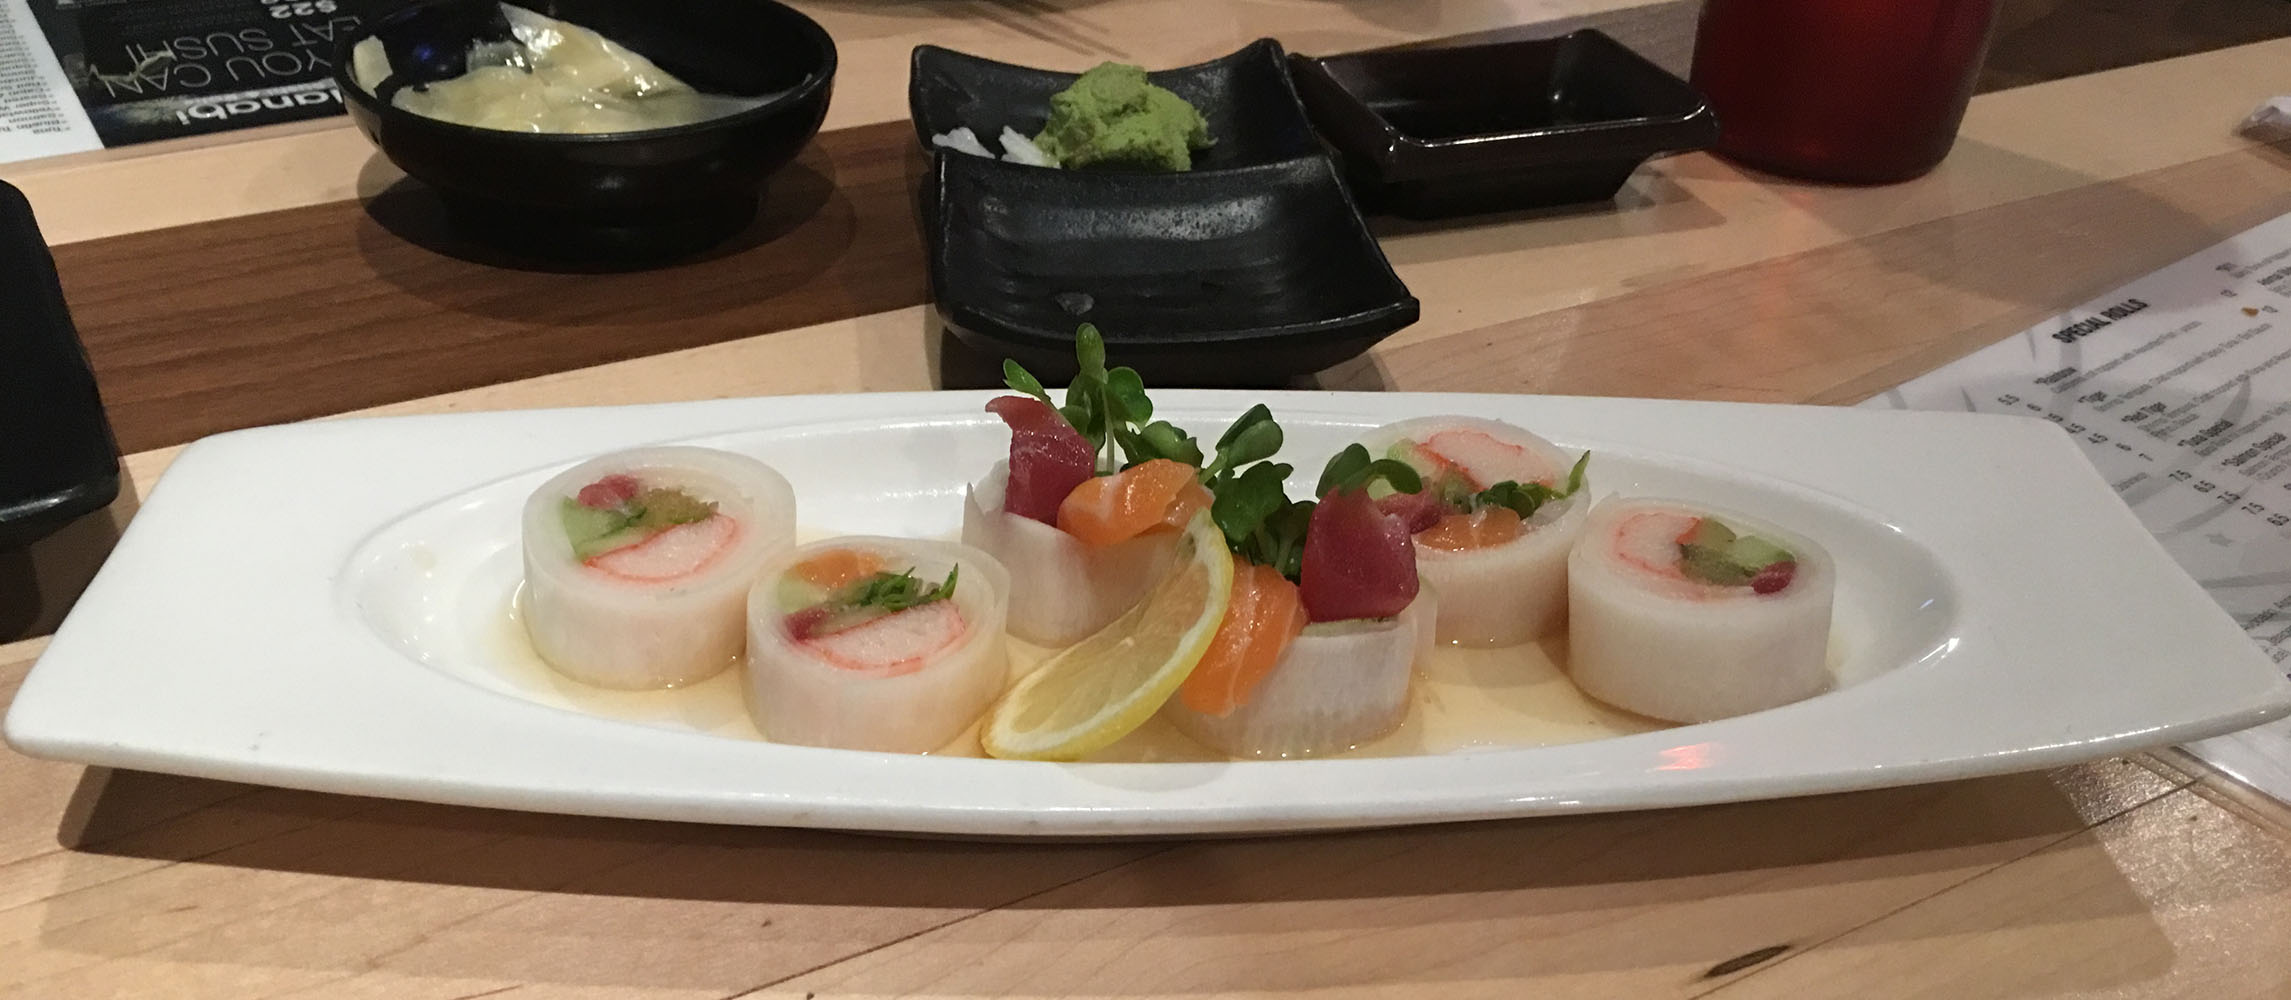 Another Tasty Entree, Hanabi Sushi & Rolls, Village Square Las Vegas